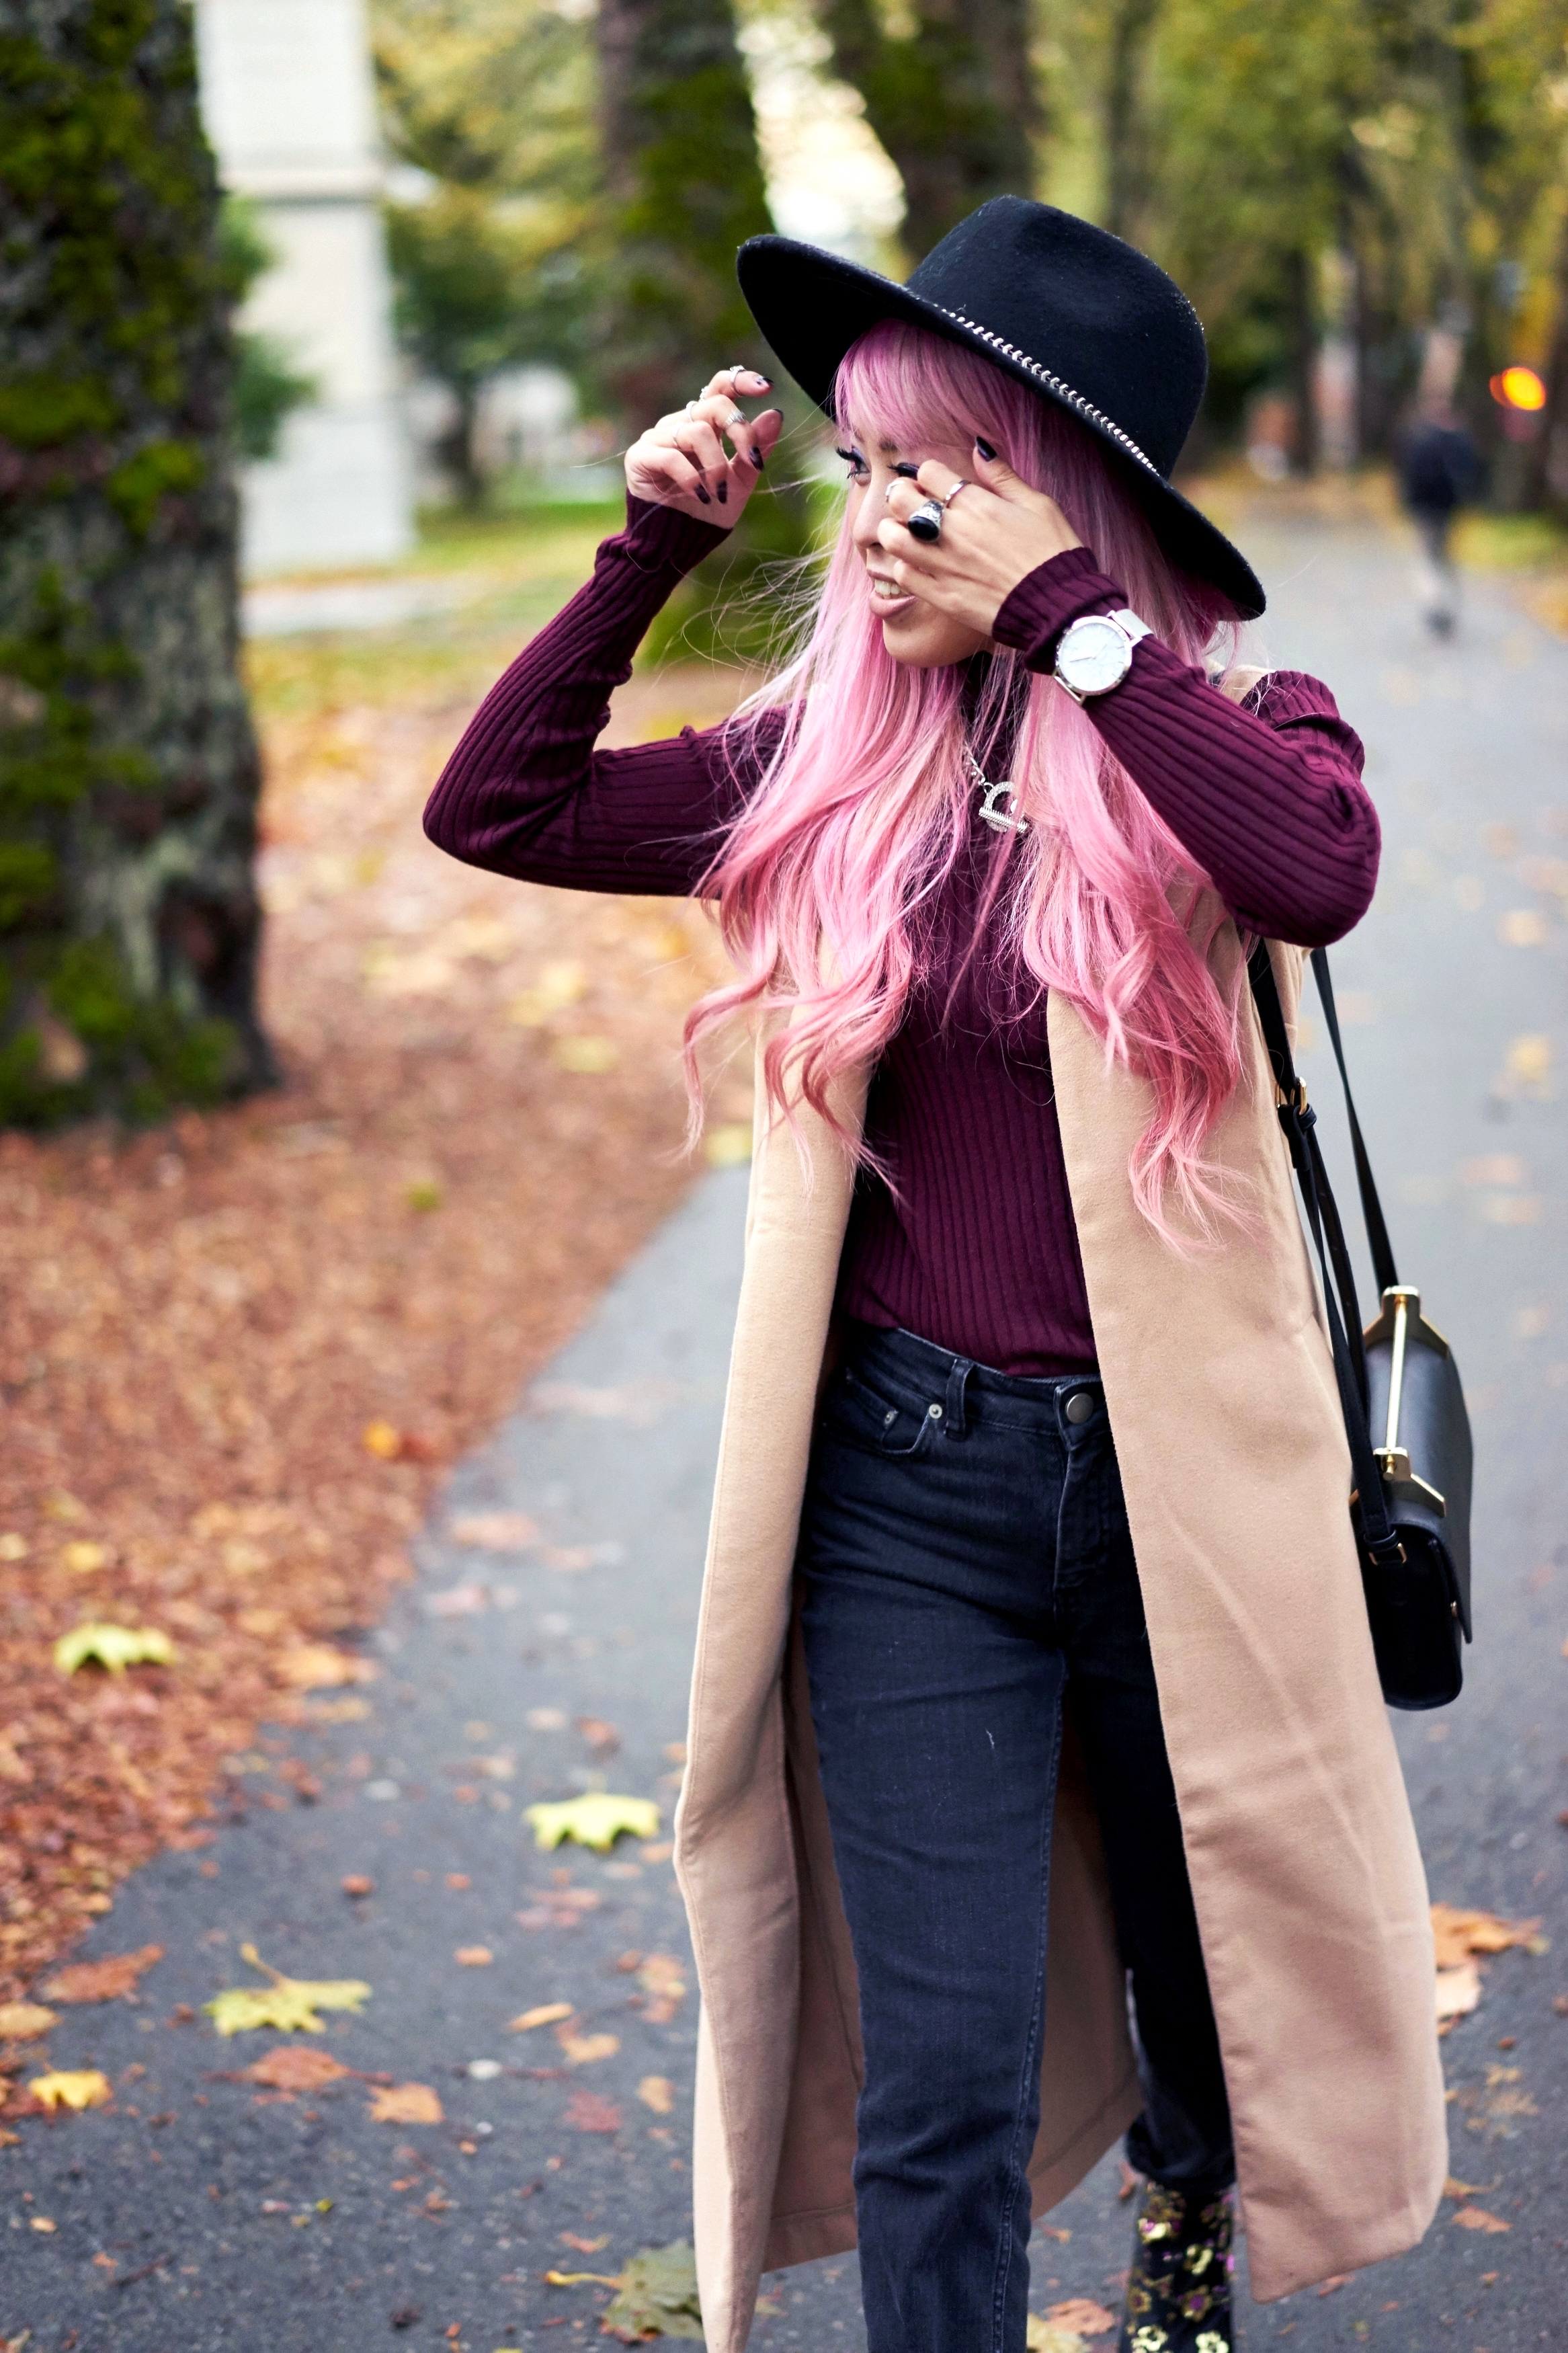 Forever 21 Fedora_Who What Wear : Target Rib Turtleneck_ASOS High Waist Mom Jeans_Ego Floral Print Ankle Boots_Christian Paul Marble Watch_Aika's Love Closet_Seattle Fashion Blogger_Japanese_Pink Hair 2